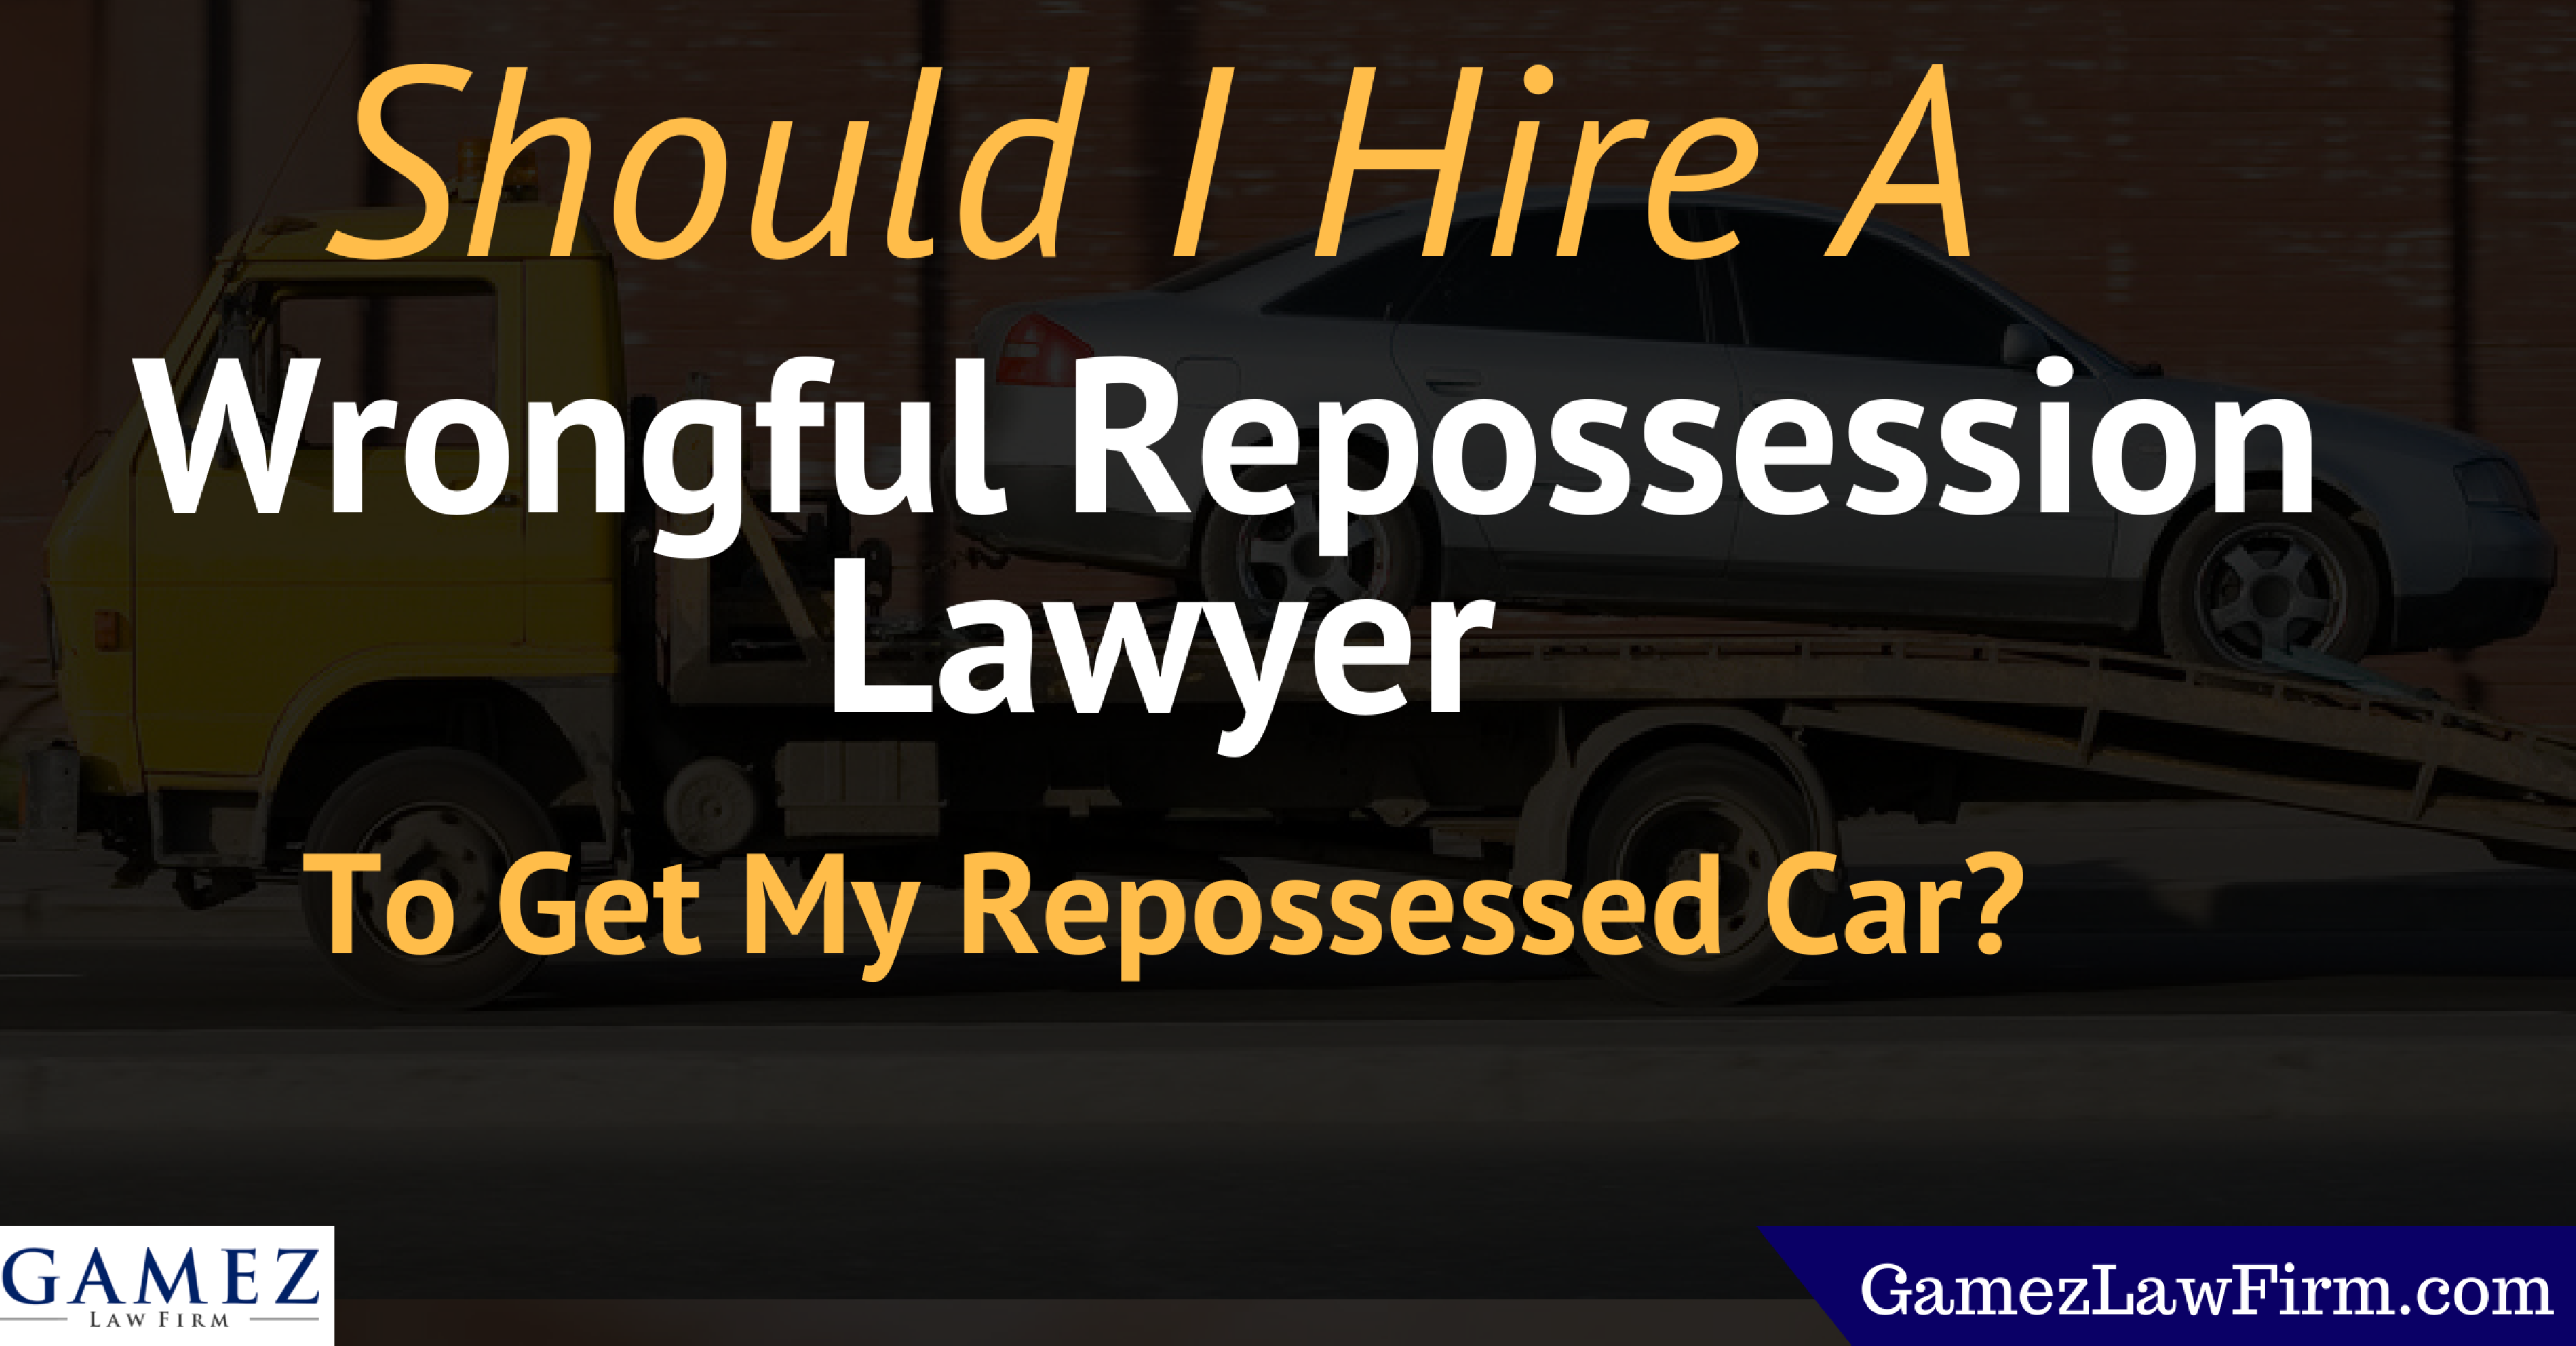 should i hire a wrongful repossession lawyer to get my repossessed